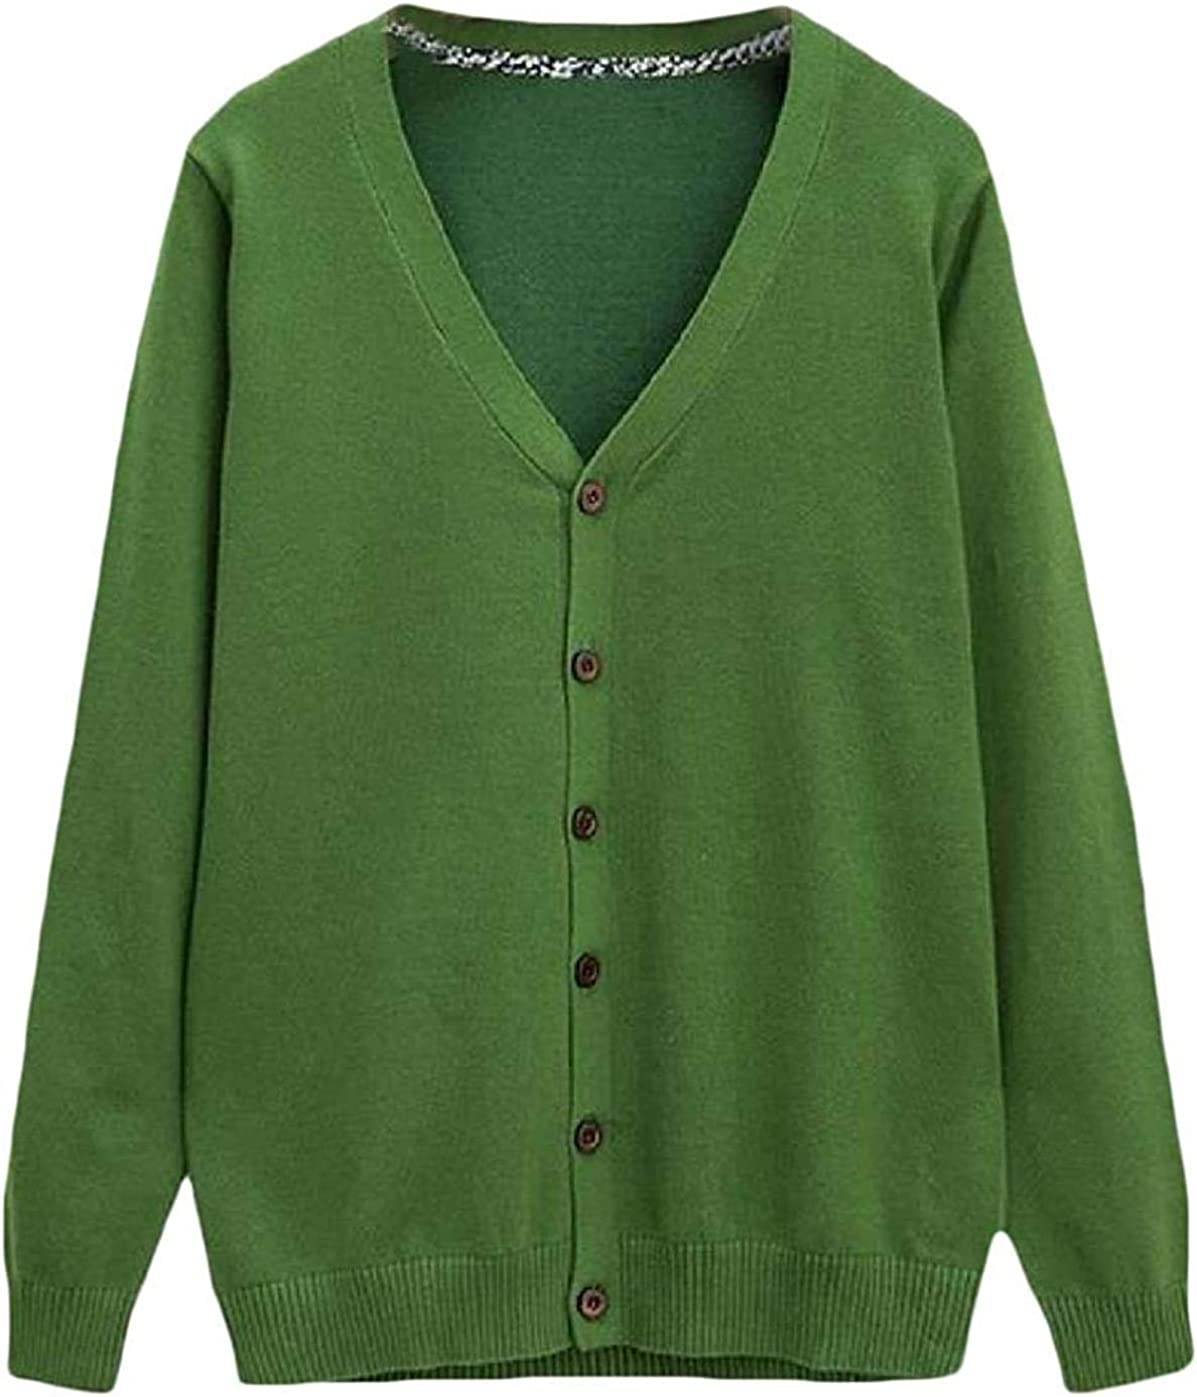 Men Cardigan Fall & Winter Knit Solid Color Button Up V-Neck Open-Front Sweater Jumper